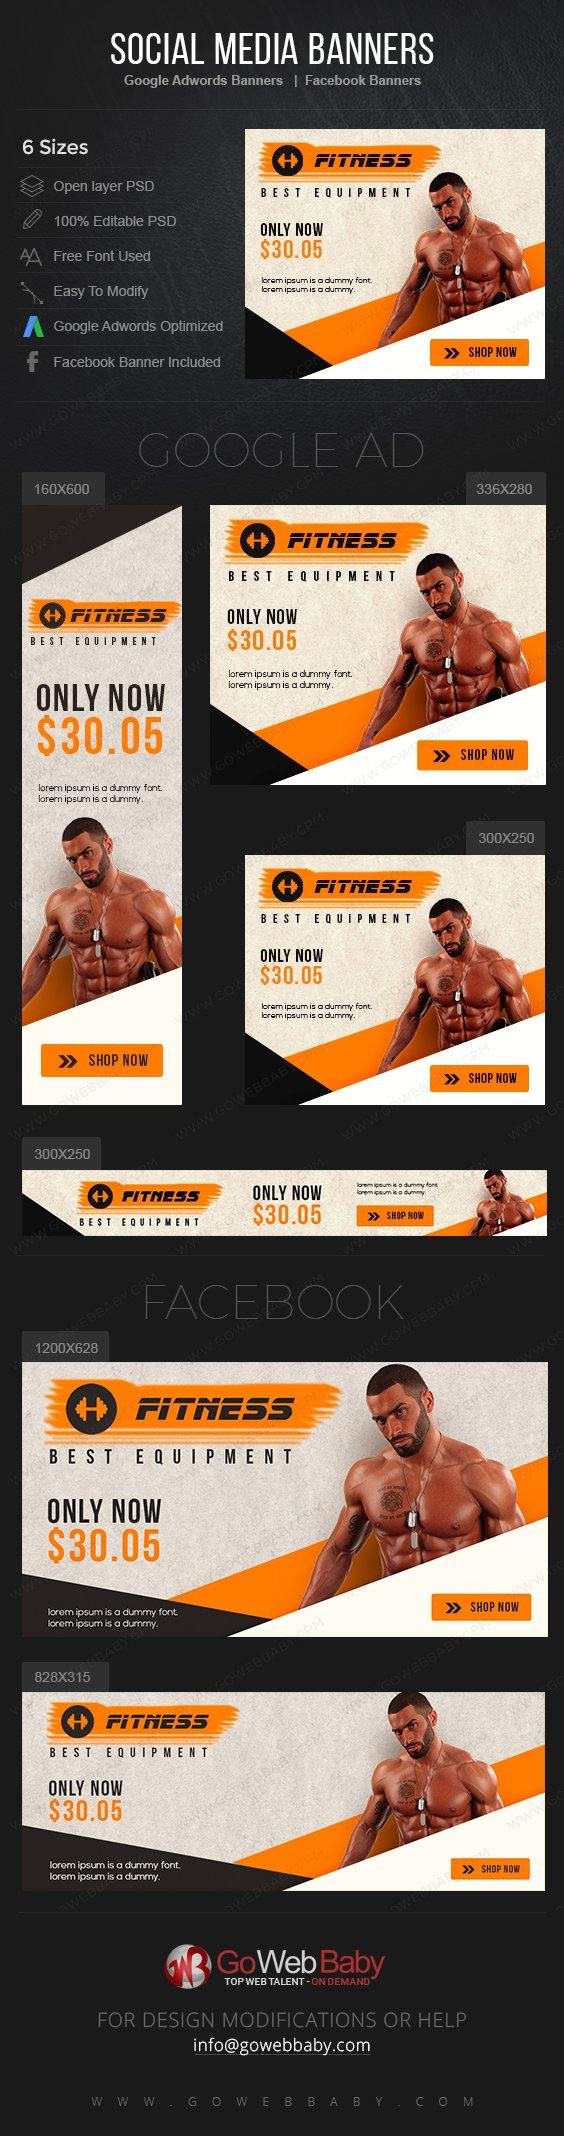 Google Adwords Display Banner with Facebook banners - Fitness and Health For Website Marketing - GoWebBaby.Com